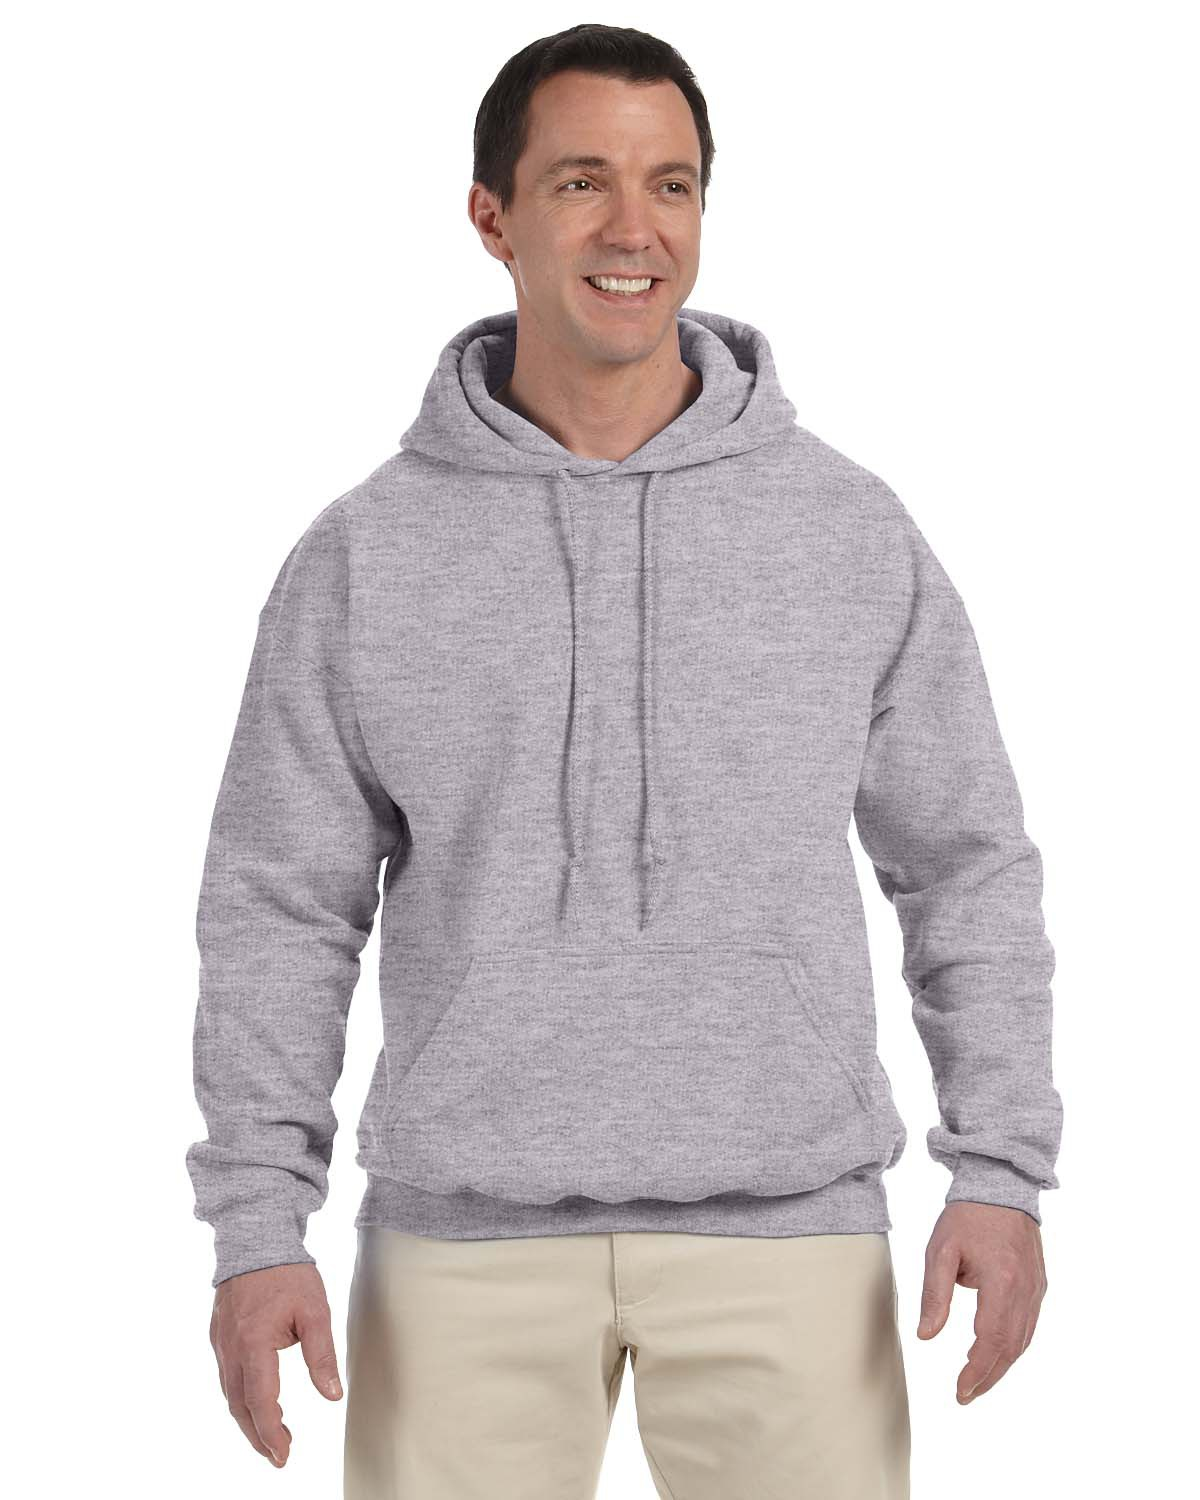 d56d059c Dr. Buff Heavyweight Sweatshirt - BuffedWear